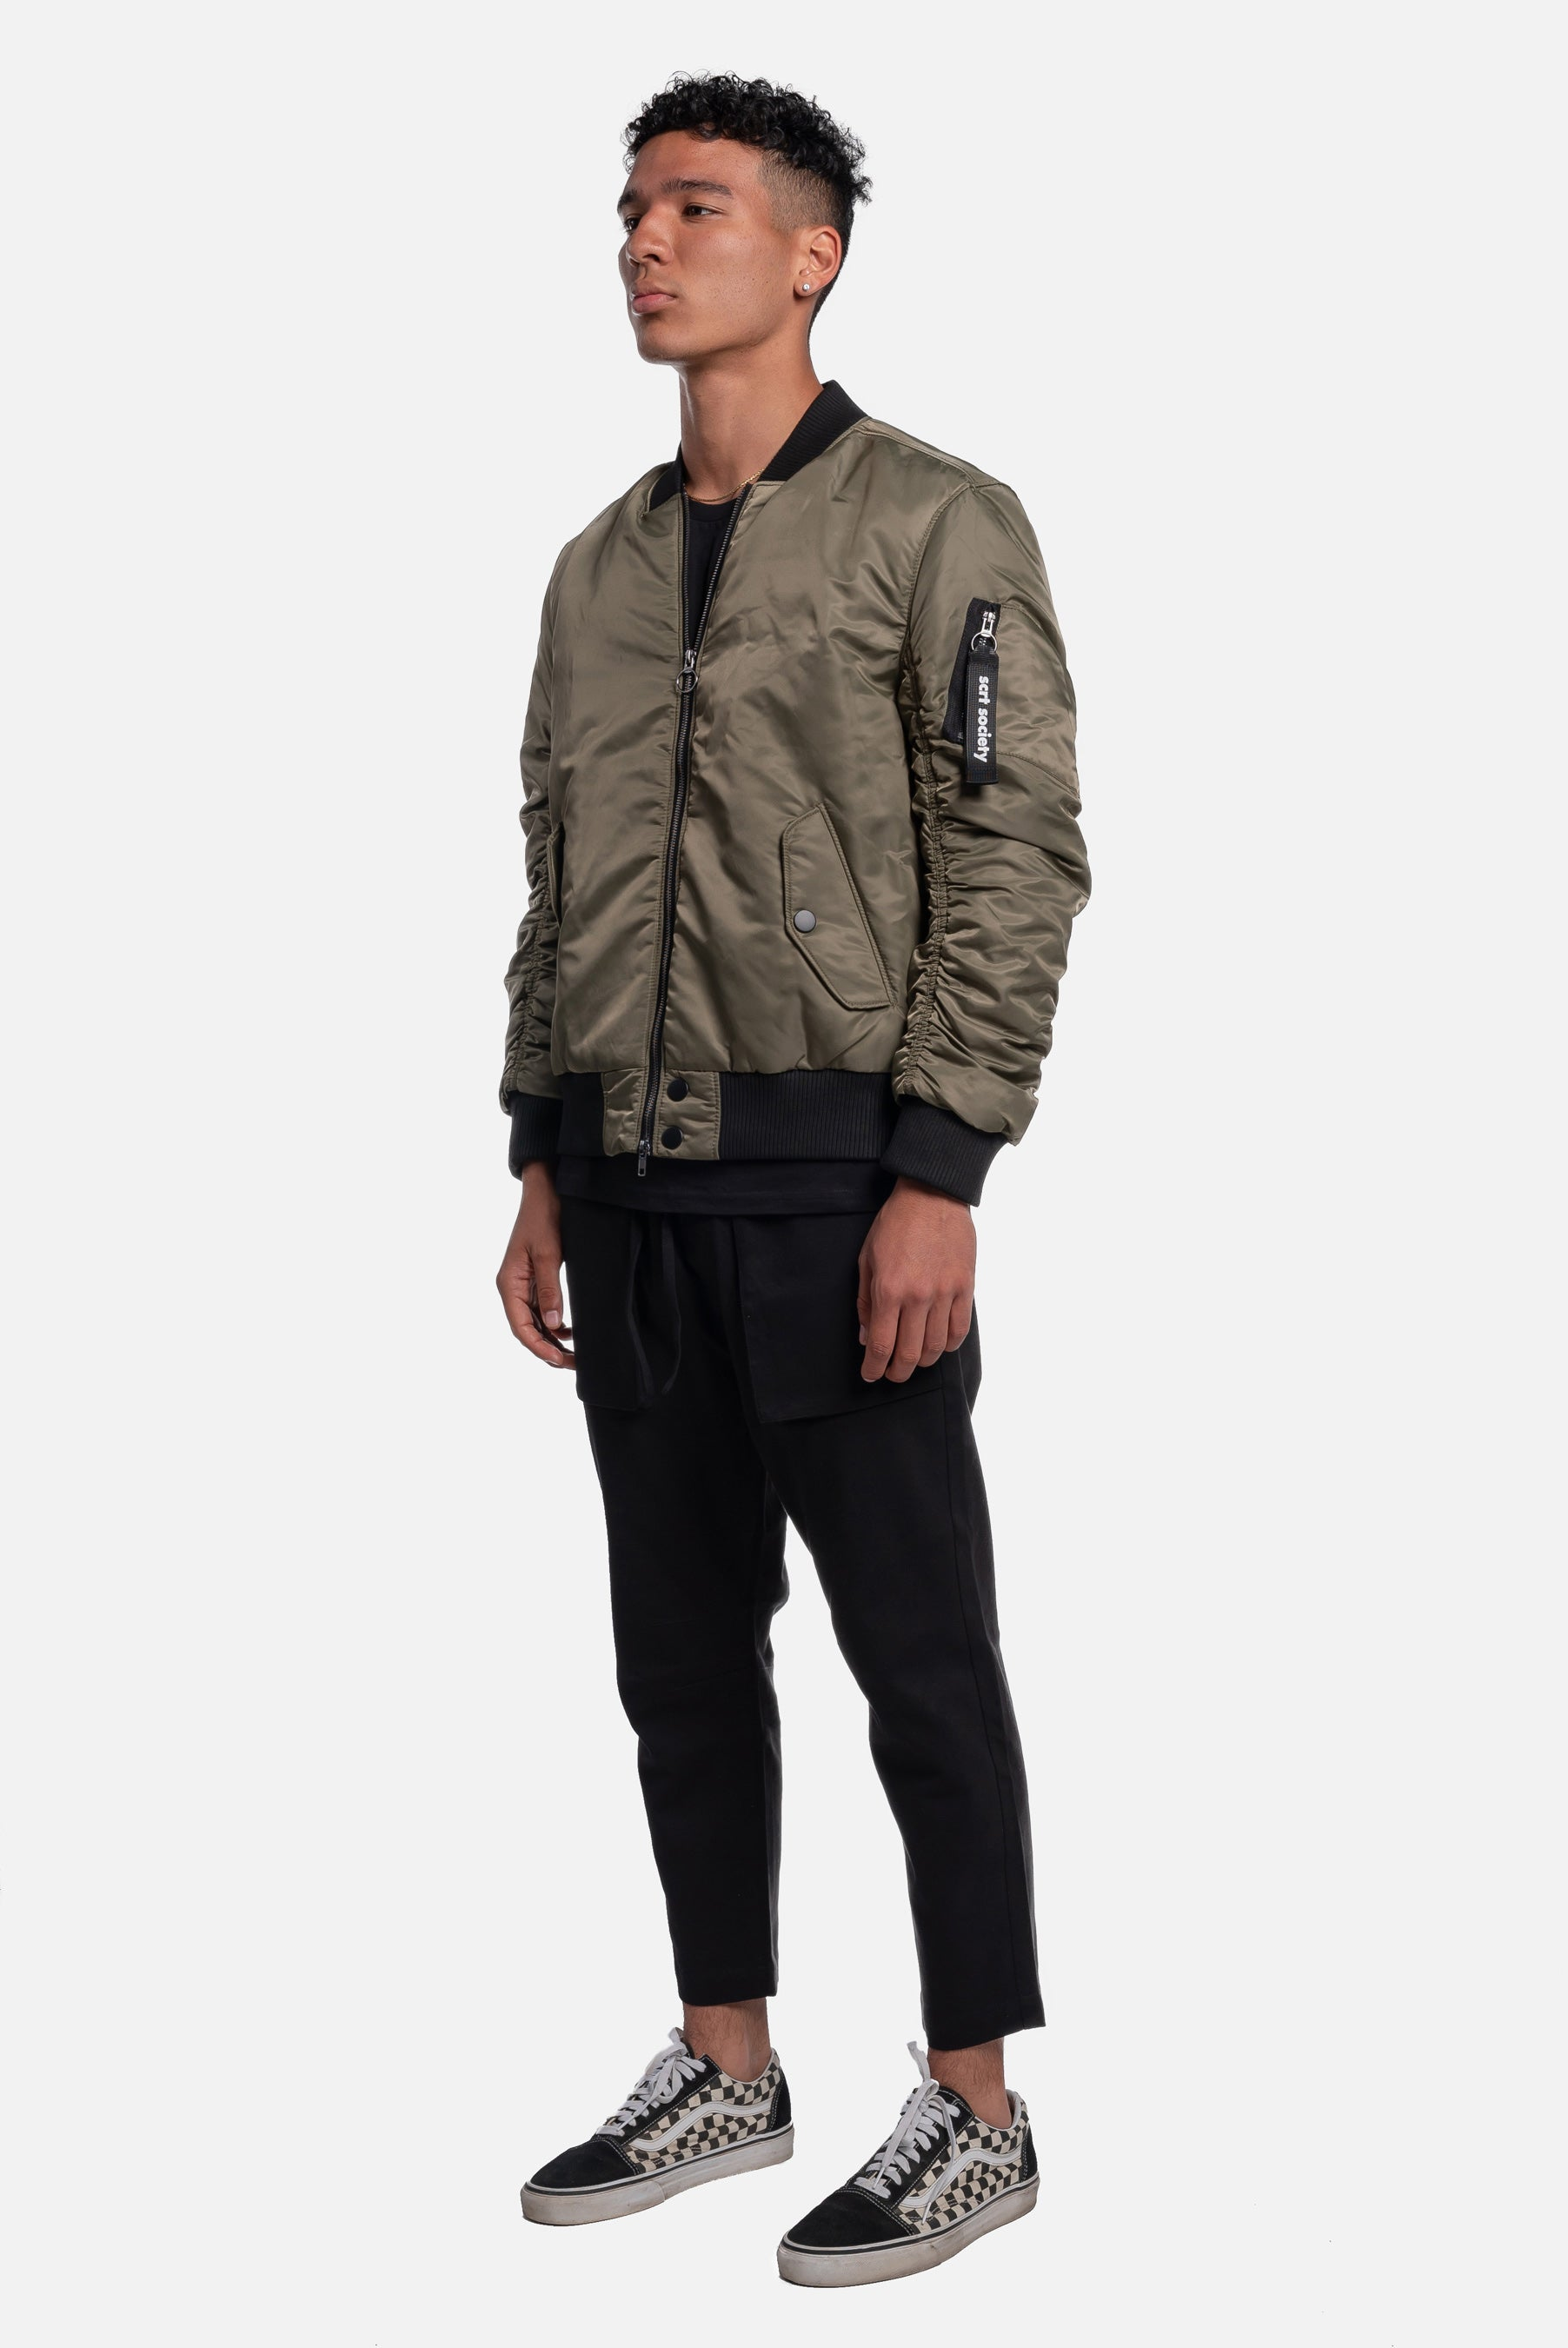 alpine article 5 ma-1 flight jacket - scrt society